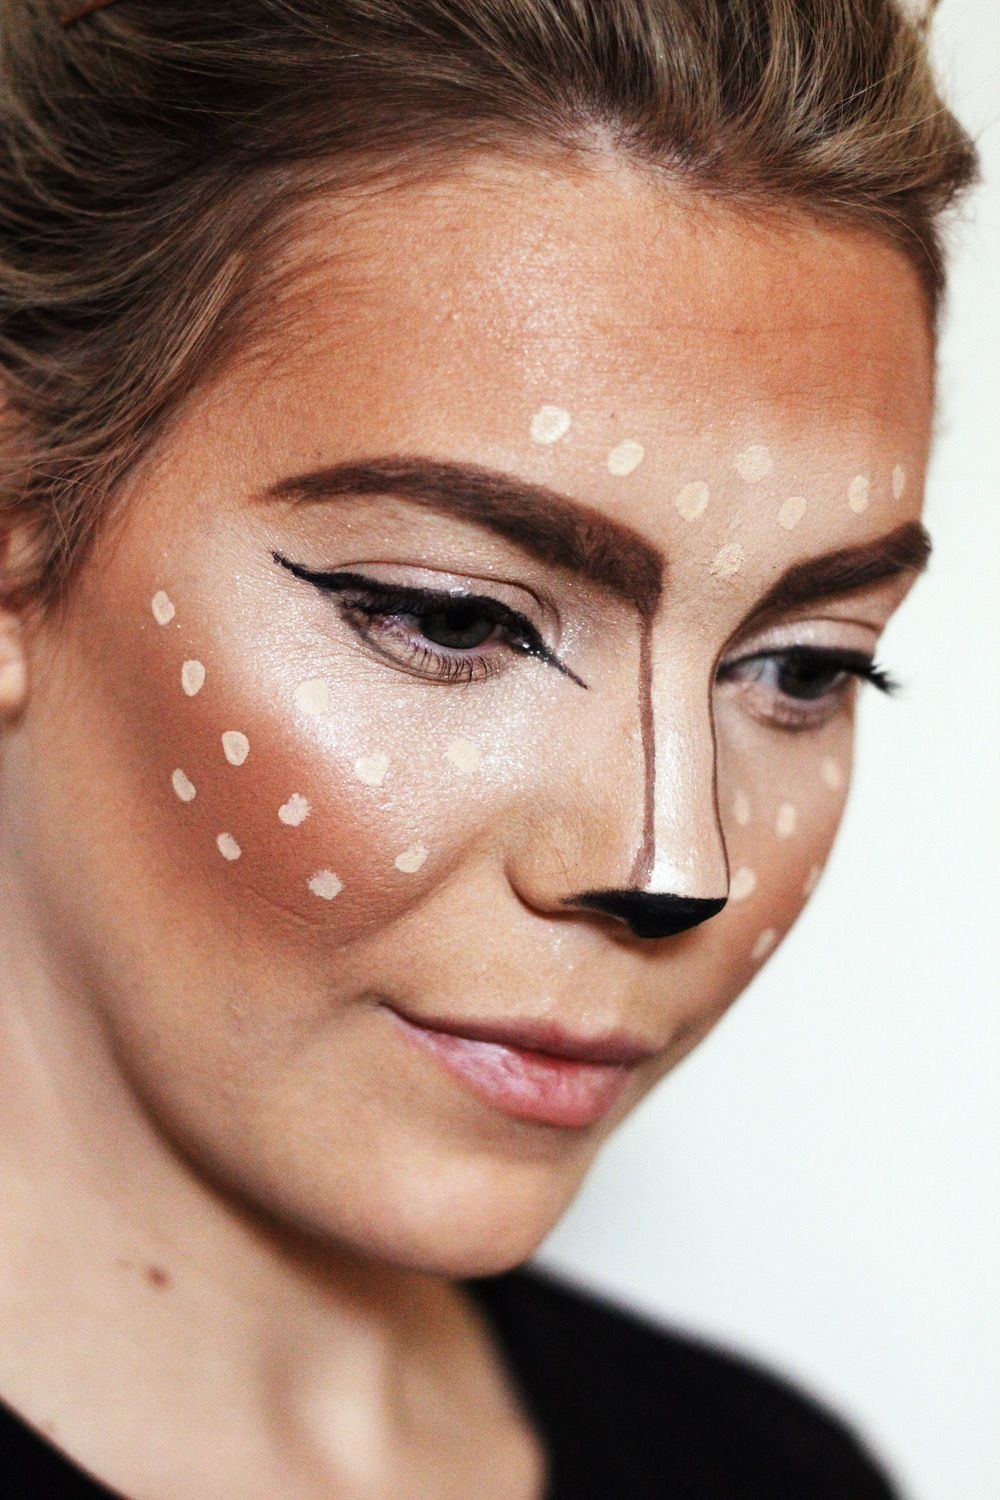 Skin Care Tips That Everyone Should Know Deer makeup